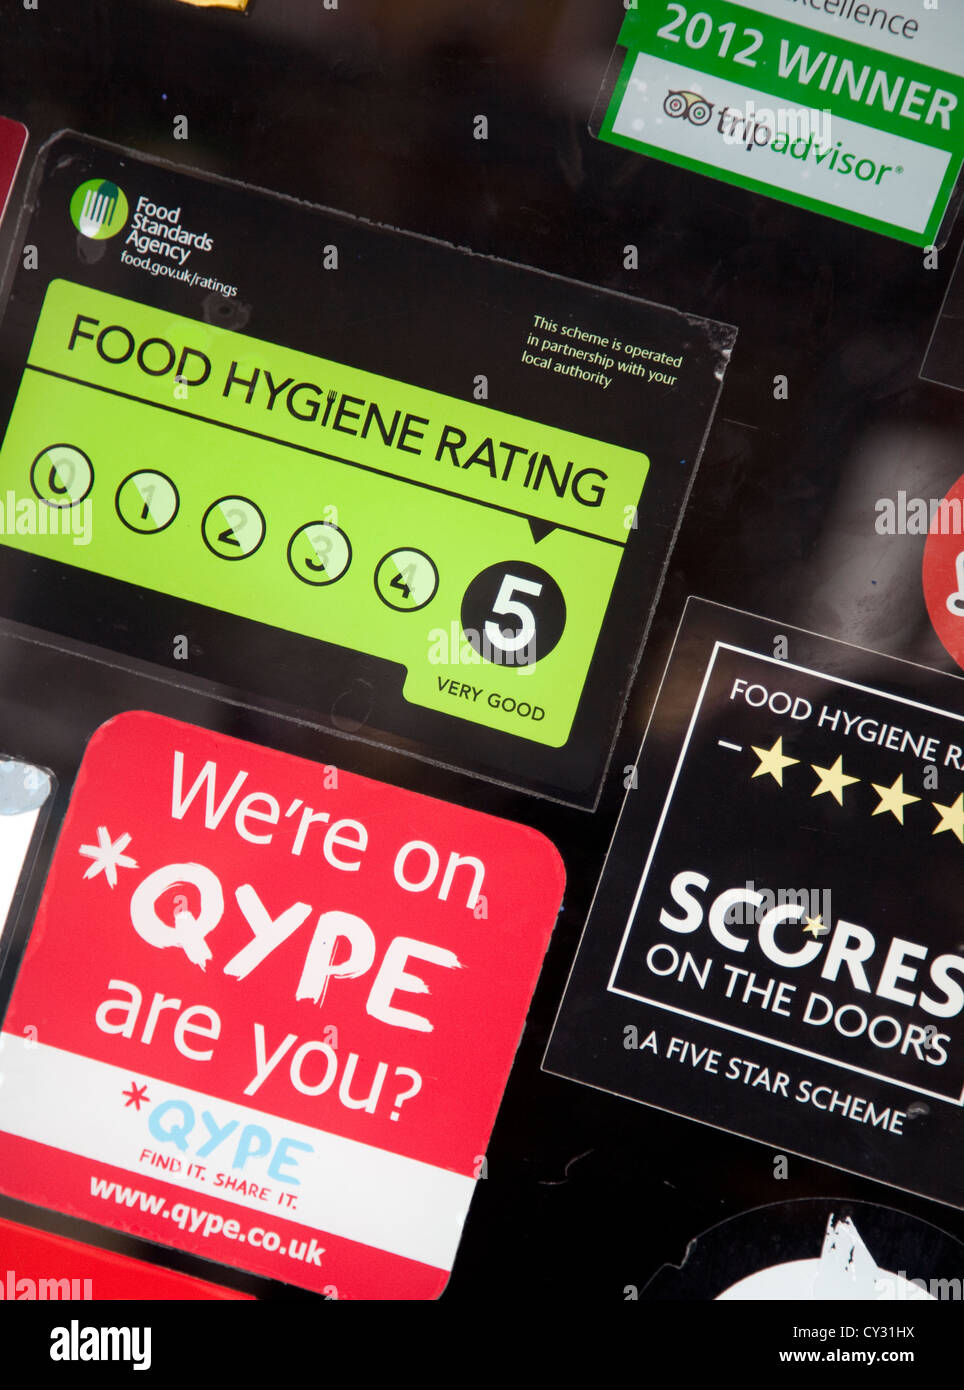 Food Standards Agency  Scores on the Doors  hygiene rating on restaurant door London & Food Standards Agency